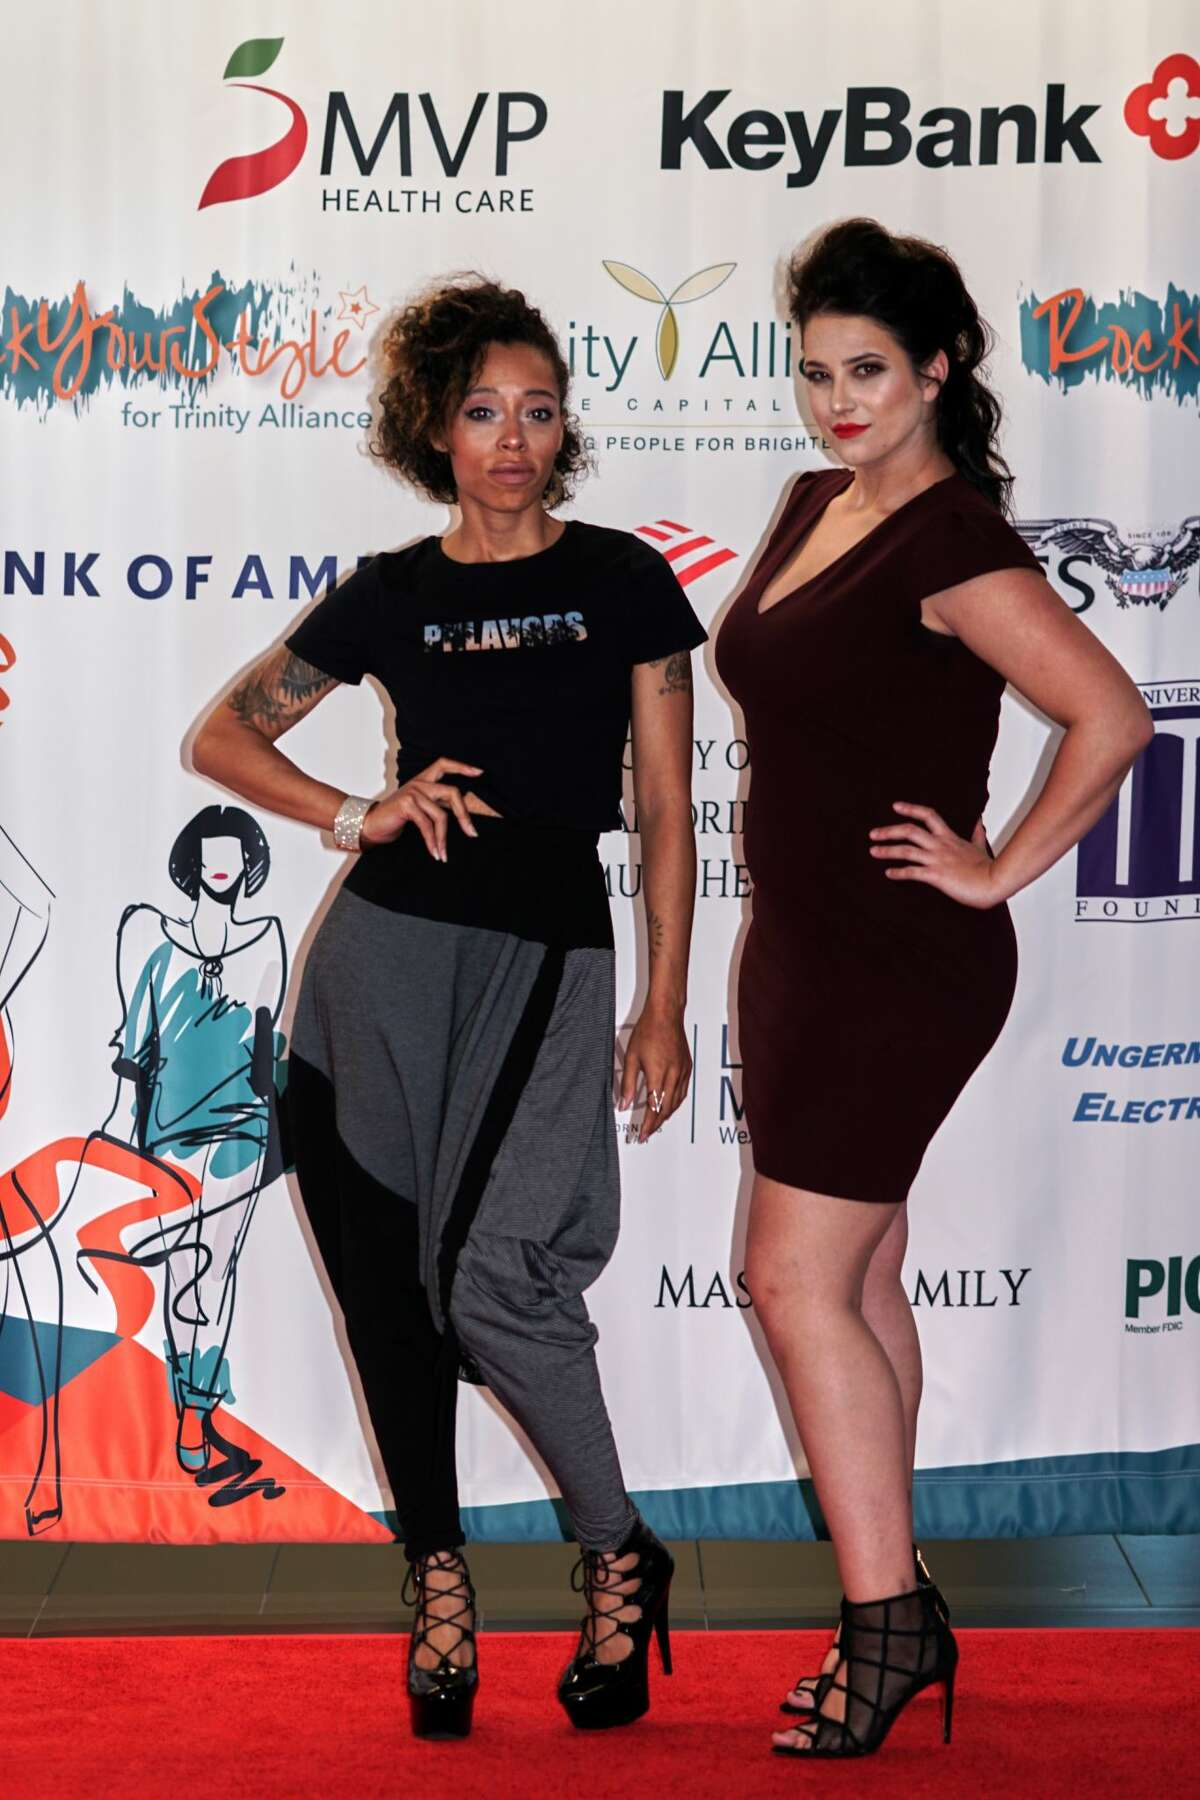 Were you Seen at Rock Your Style for Trinity Alliance in Albany on Sept. 20, 2019?